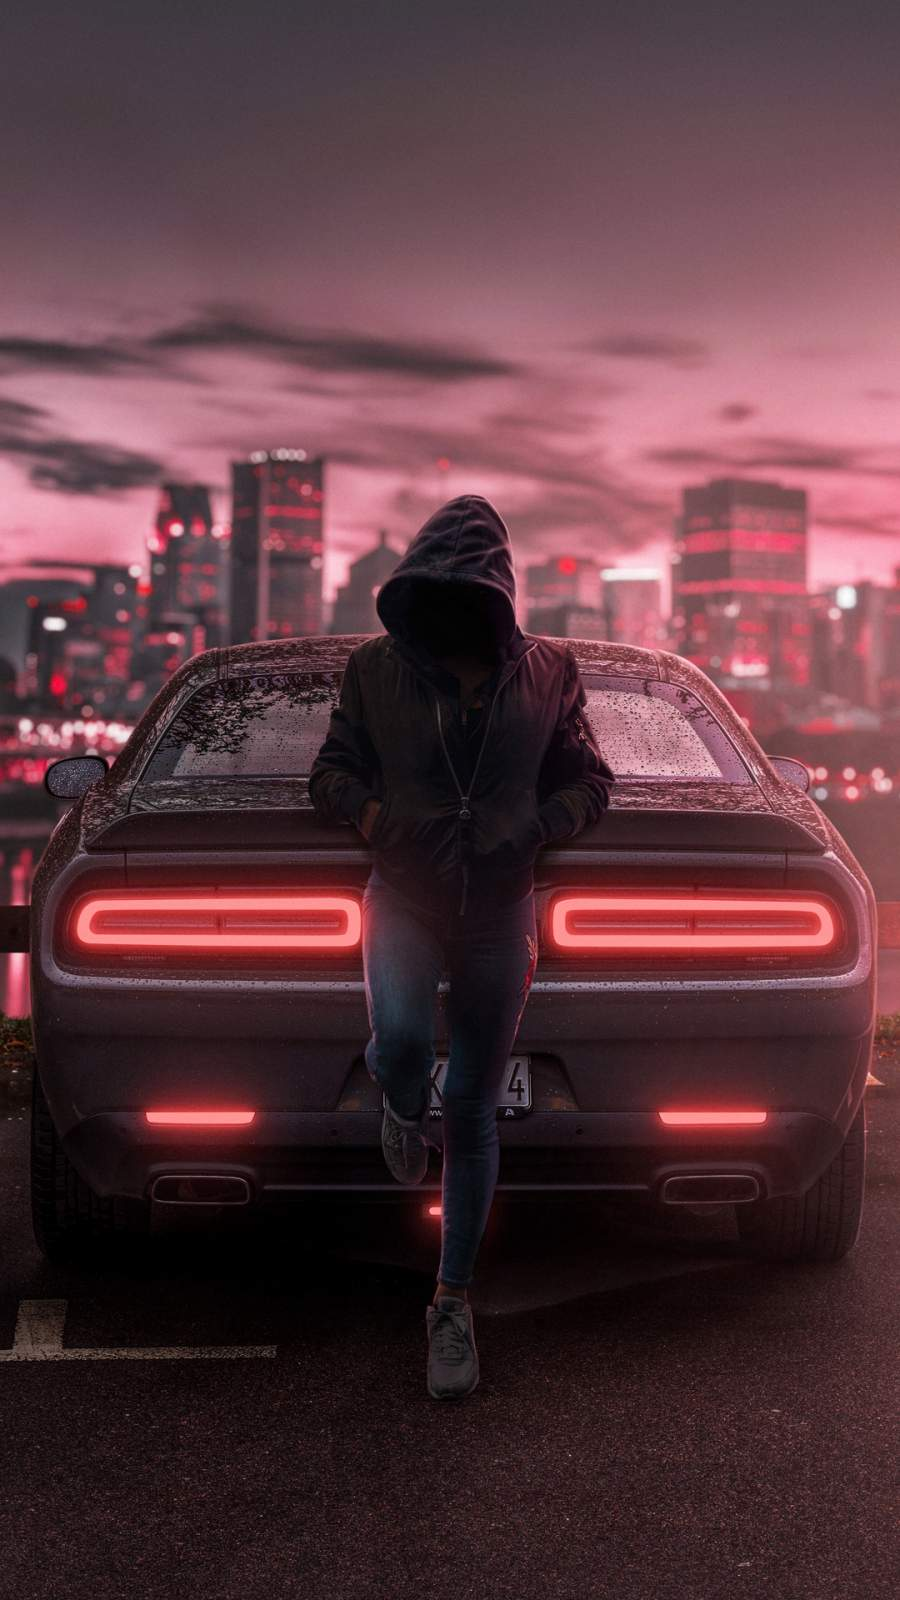 Dodge Challenger Anonymus Guy iPhone Wallpaper